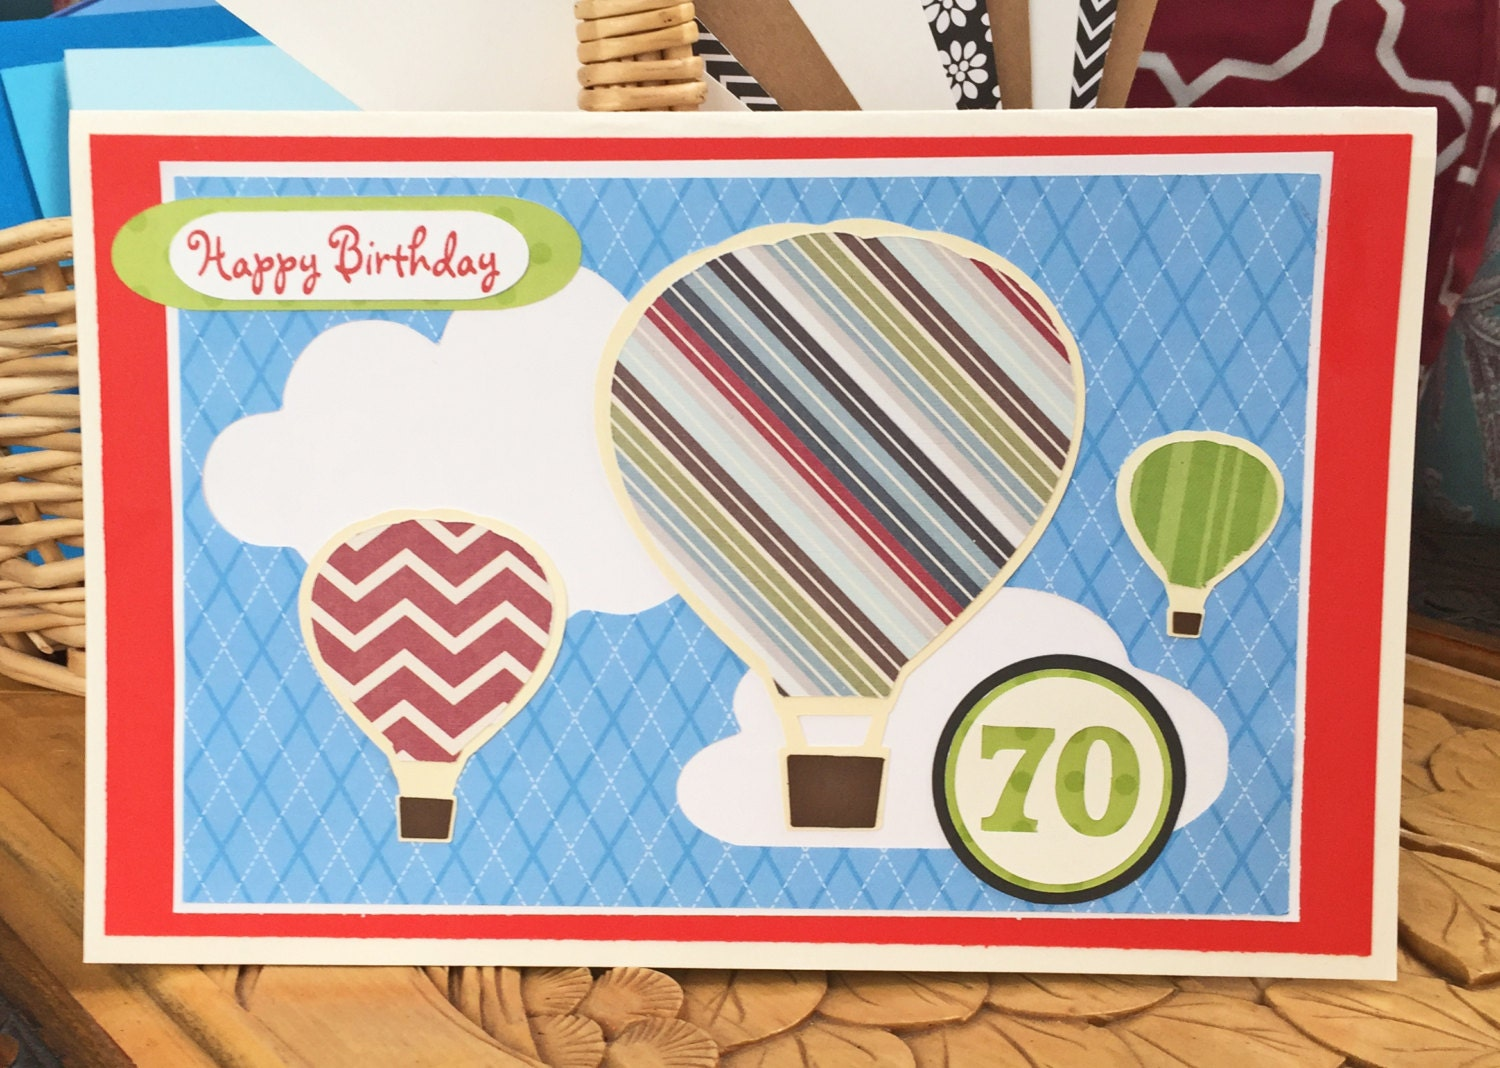 Personalized hot air balloon birthday card custom handmade personalized hot air balloon birthday card custom handmade men women for him hot air balloon greeting card balloons clouds bookmarktalkfo Image collections